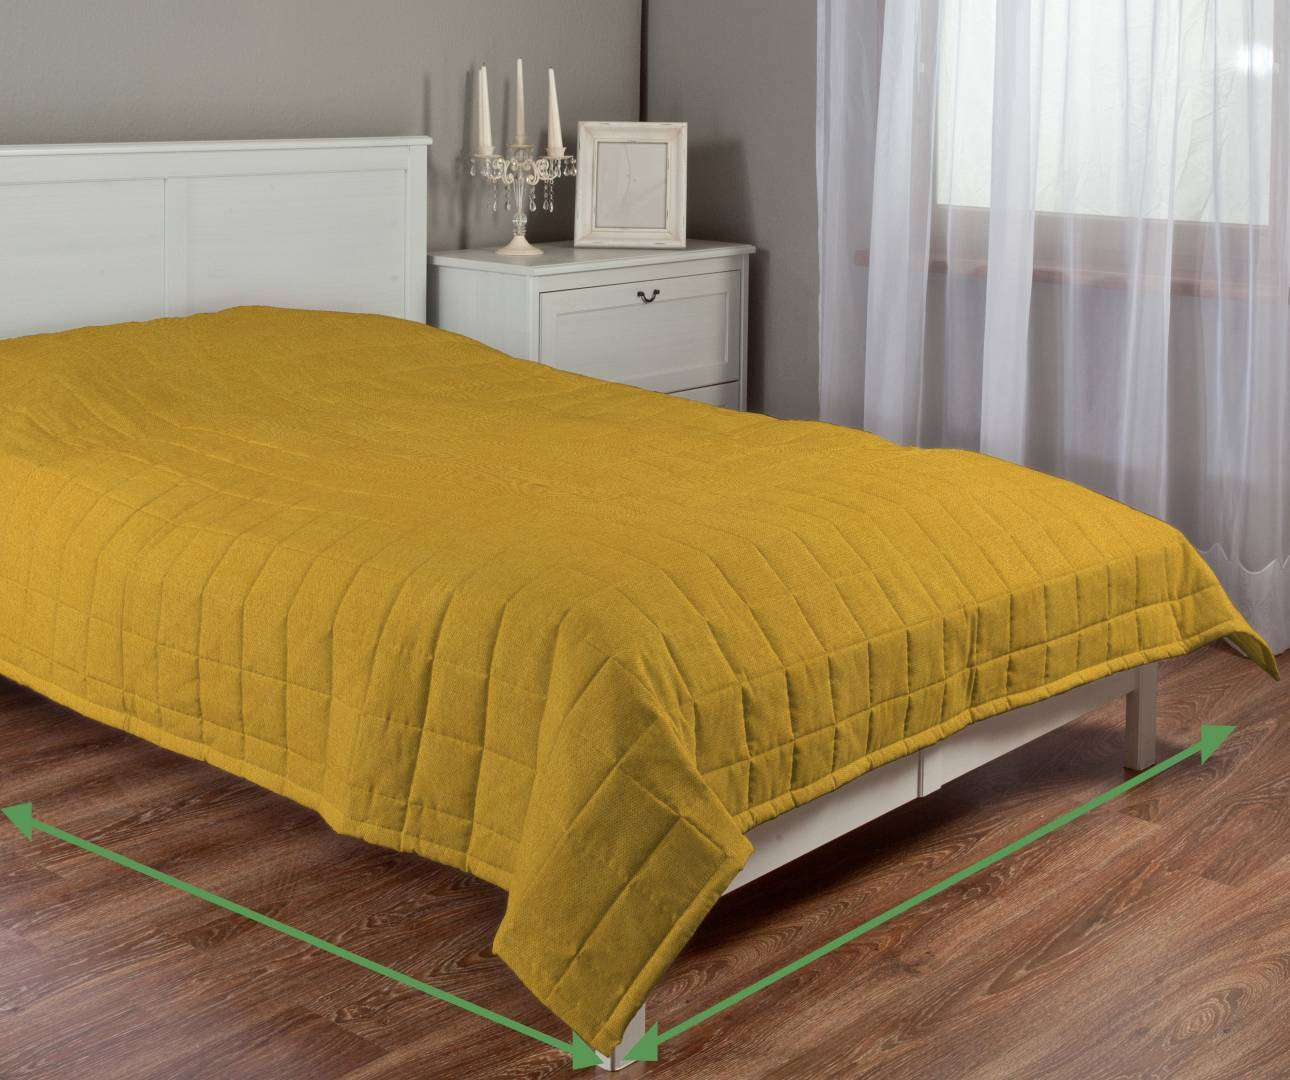 Quilted throw (check quilt pattern) in collection Etna , fabric: 705-04